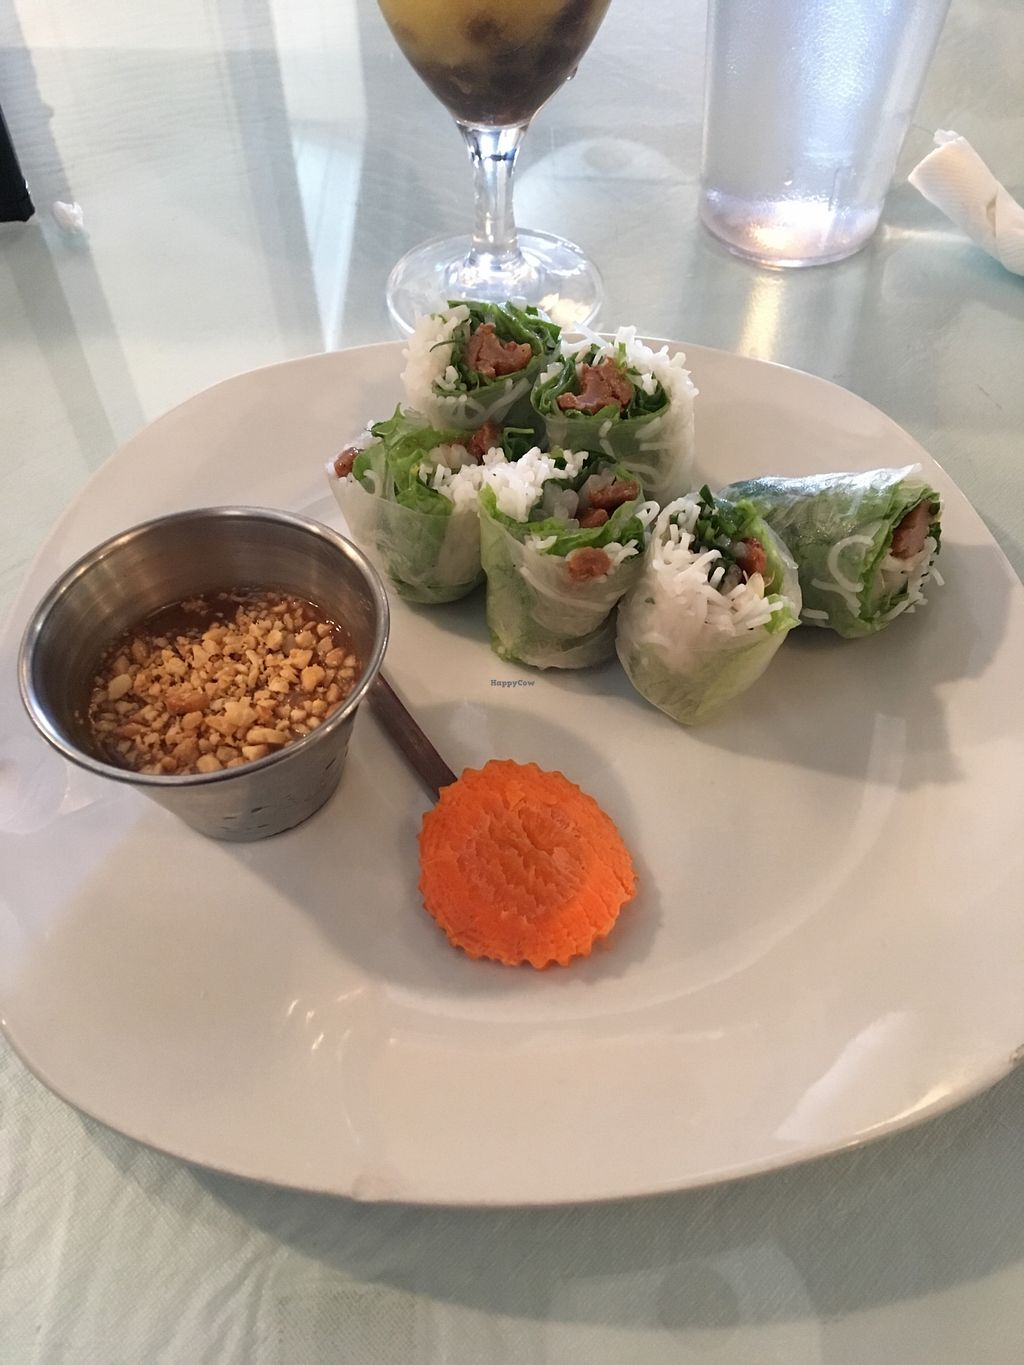 """Photo of Boba House  by <a href=""""/members/profile/Aneroz"""">Aneroz</a> <br/>Spring rolls/summer rolls very nice presentation and flavor <br/> February 2, 2018  - <a href='/contact/abuse/image/3396/354118'>Report</a>"""